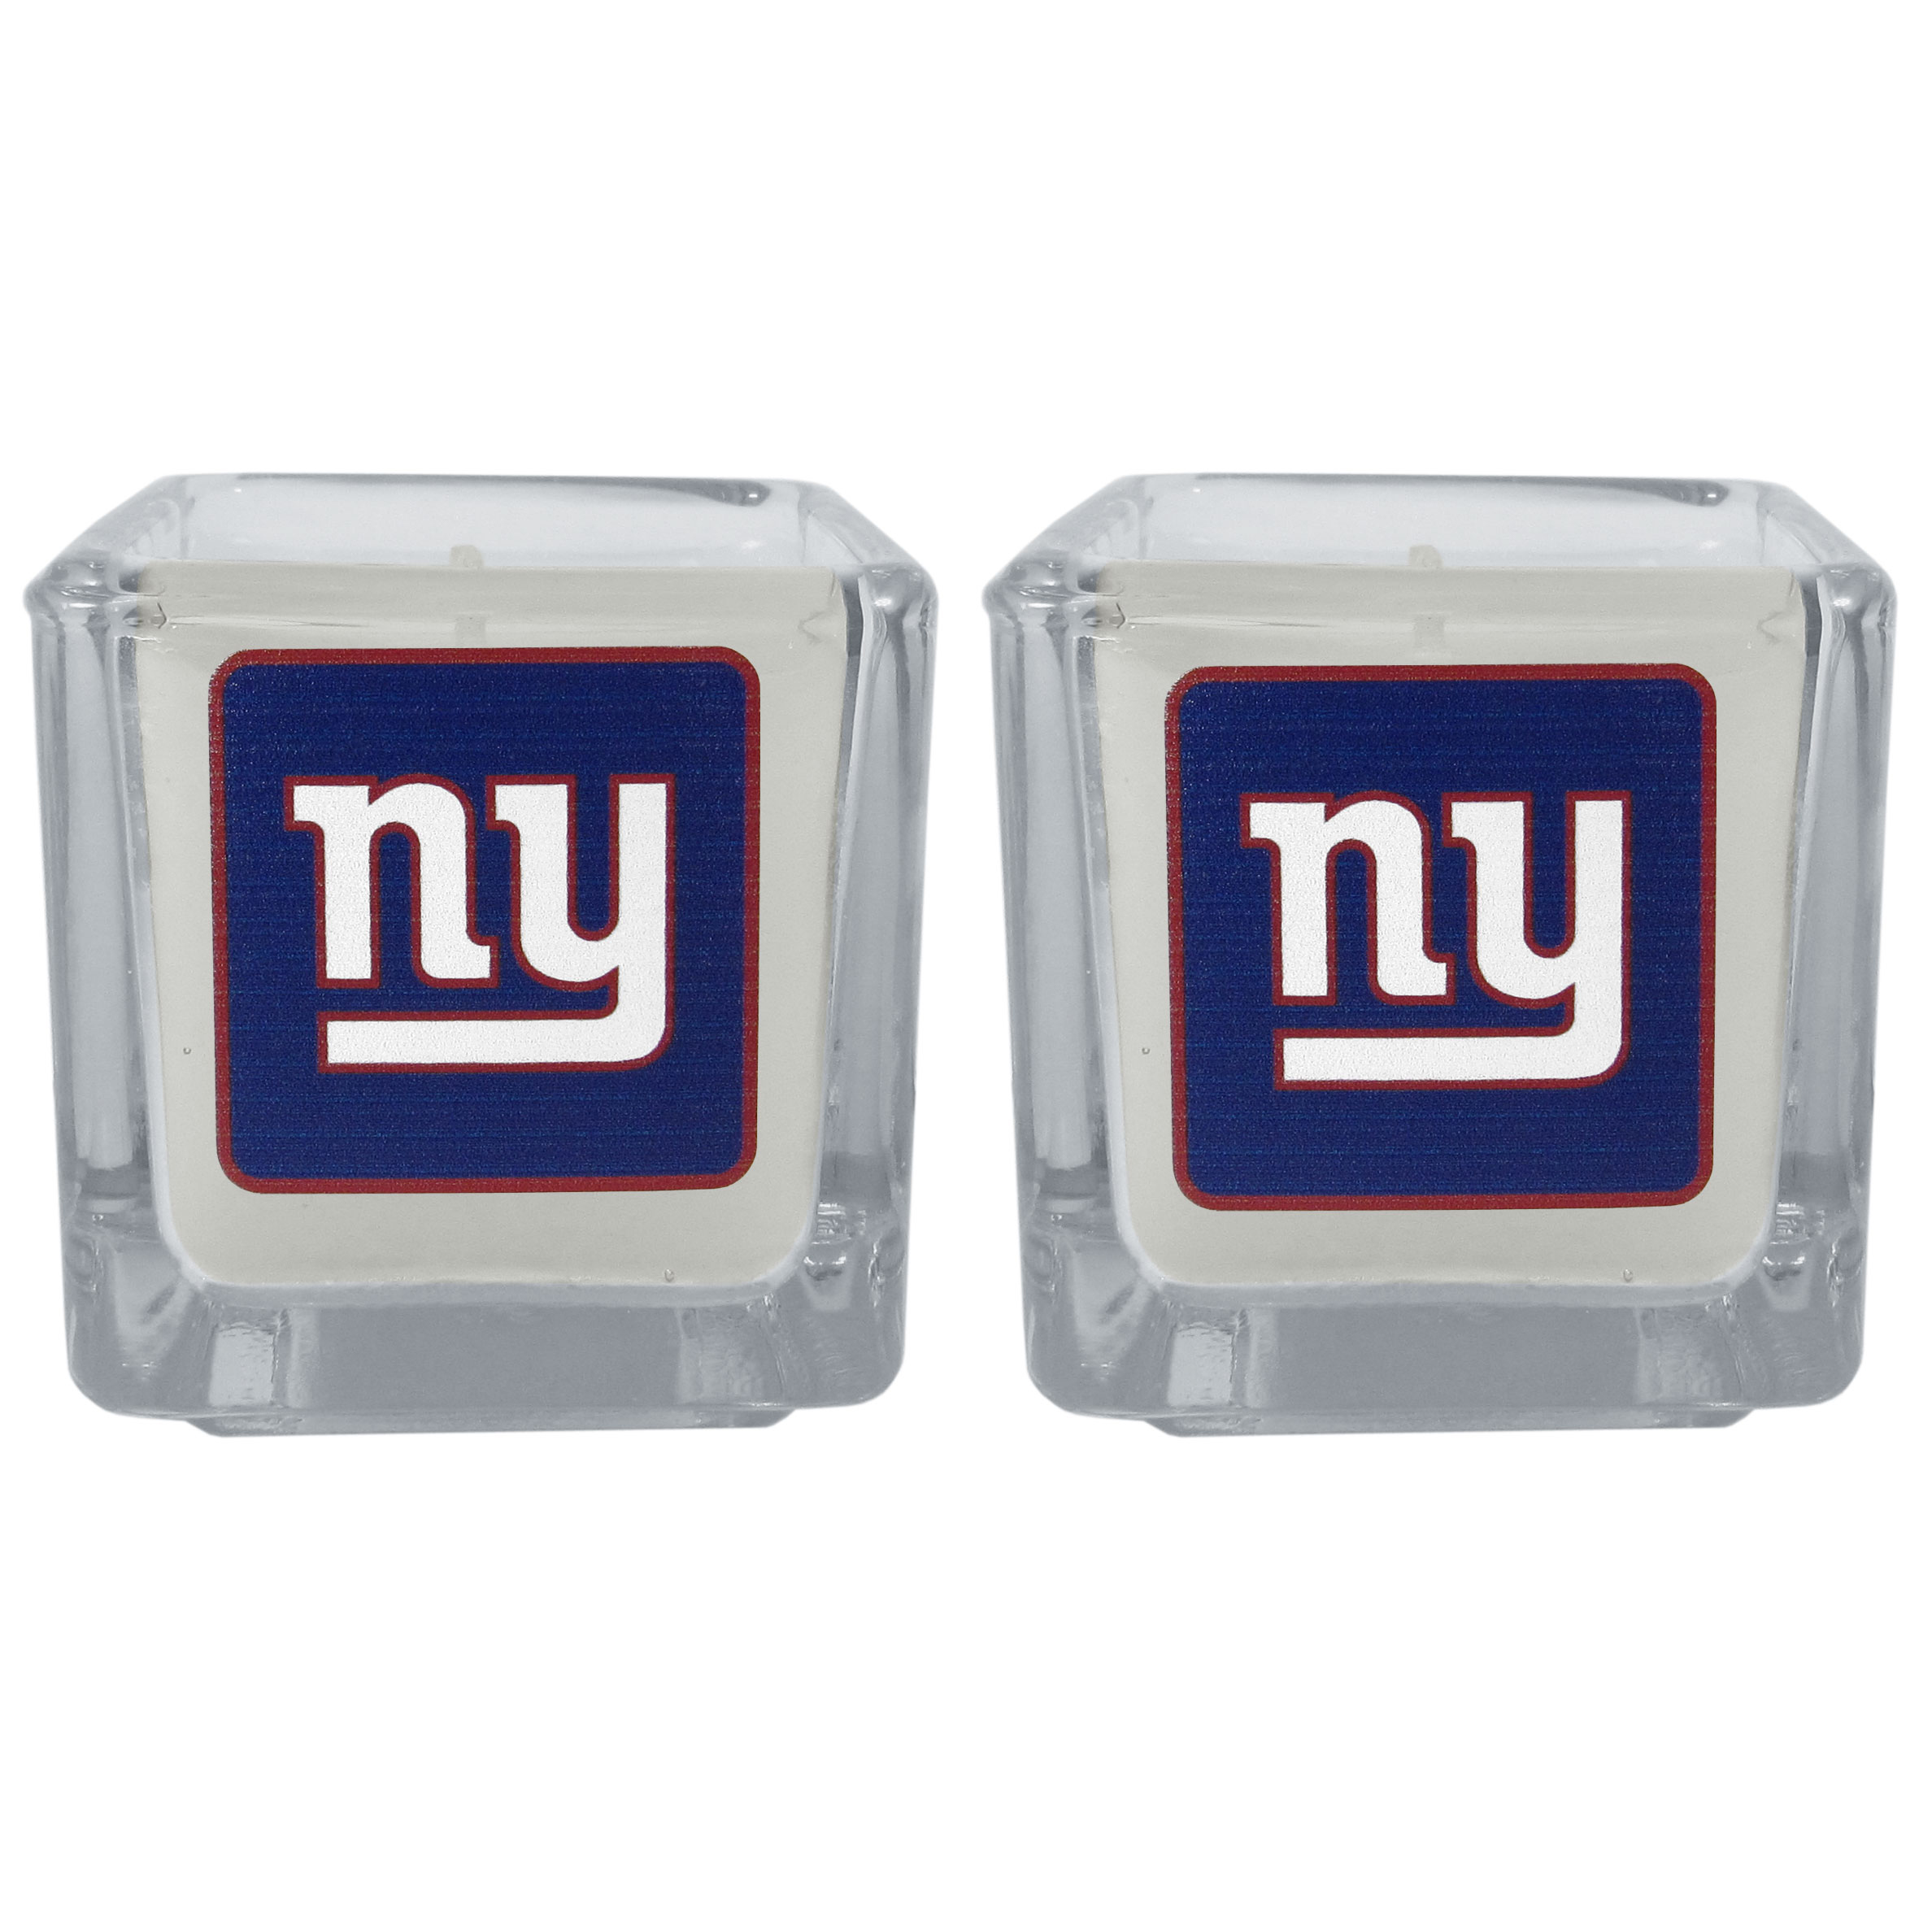 New York Giants Graphics Candle Set - Our candle set features 2 lightly vanilla scented candles with the New York Giants logo expertly printed on front. The candles are 2 inches tall in the votive style.